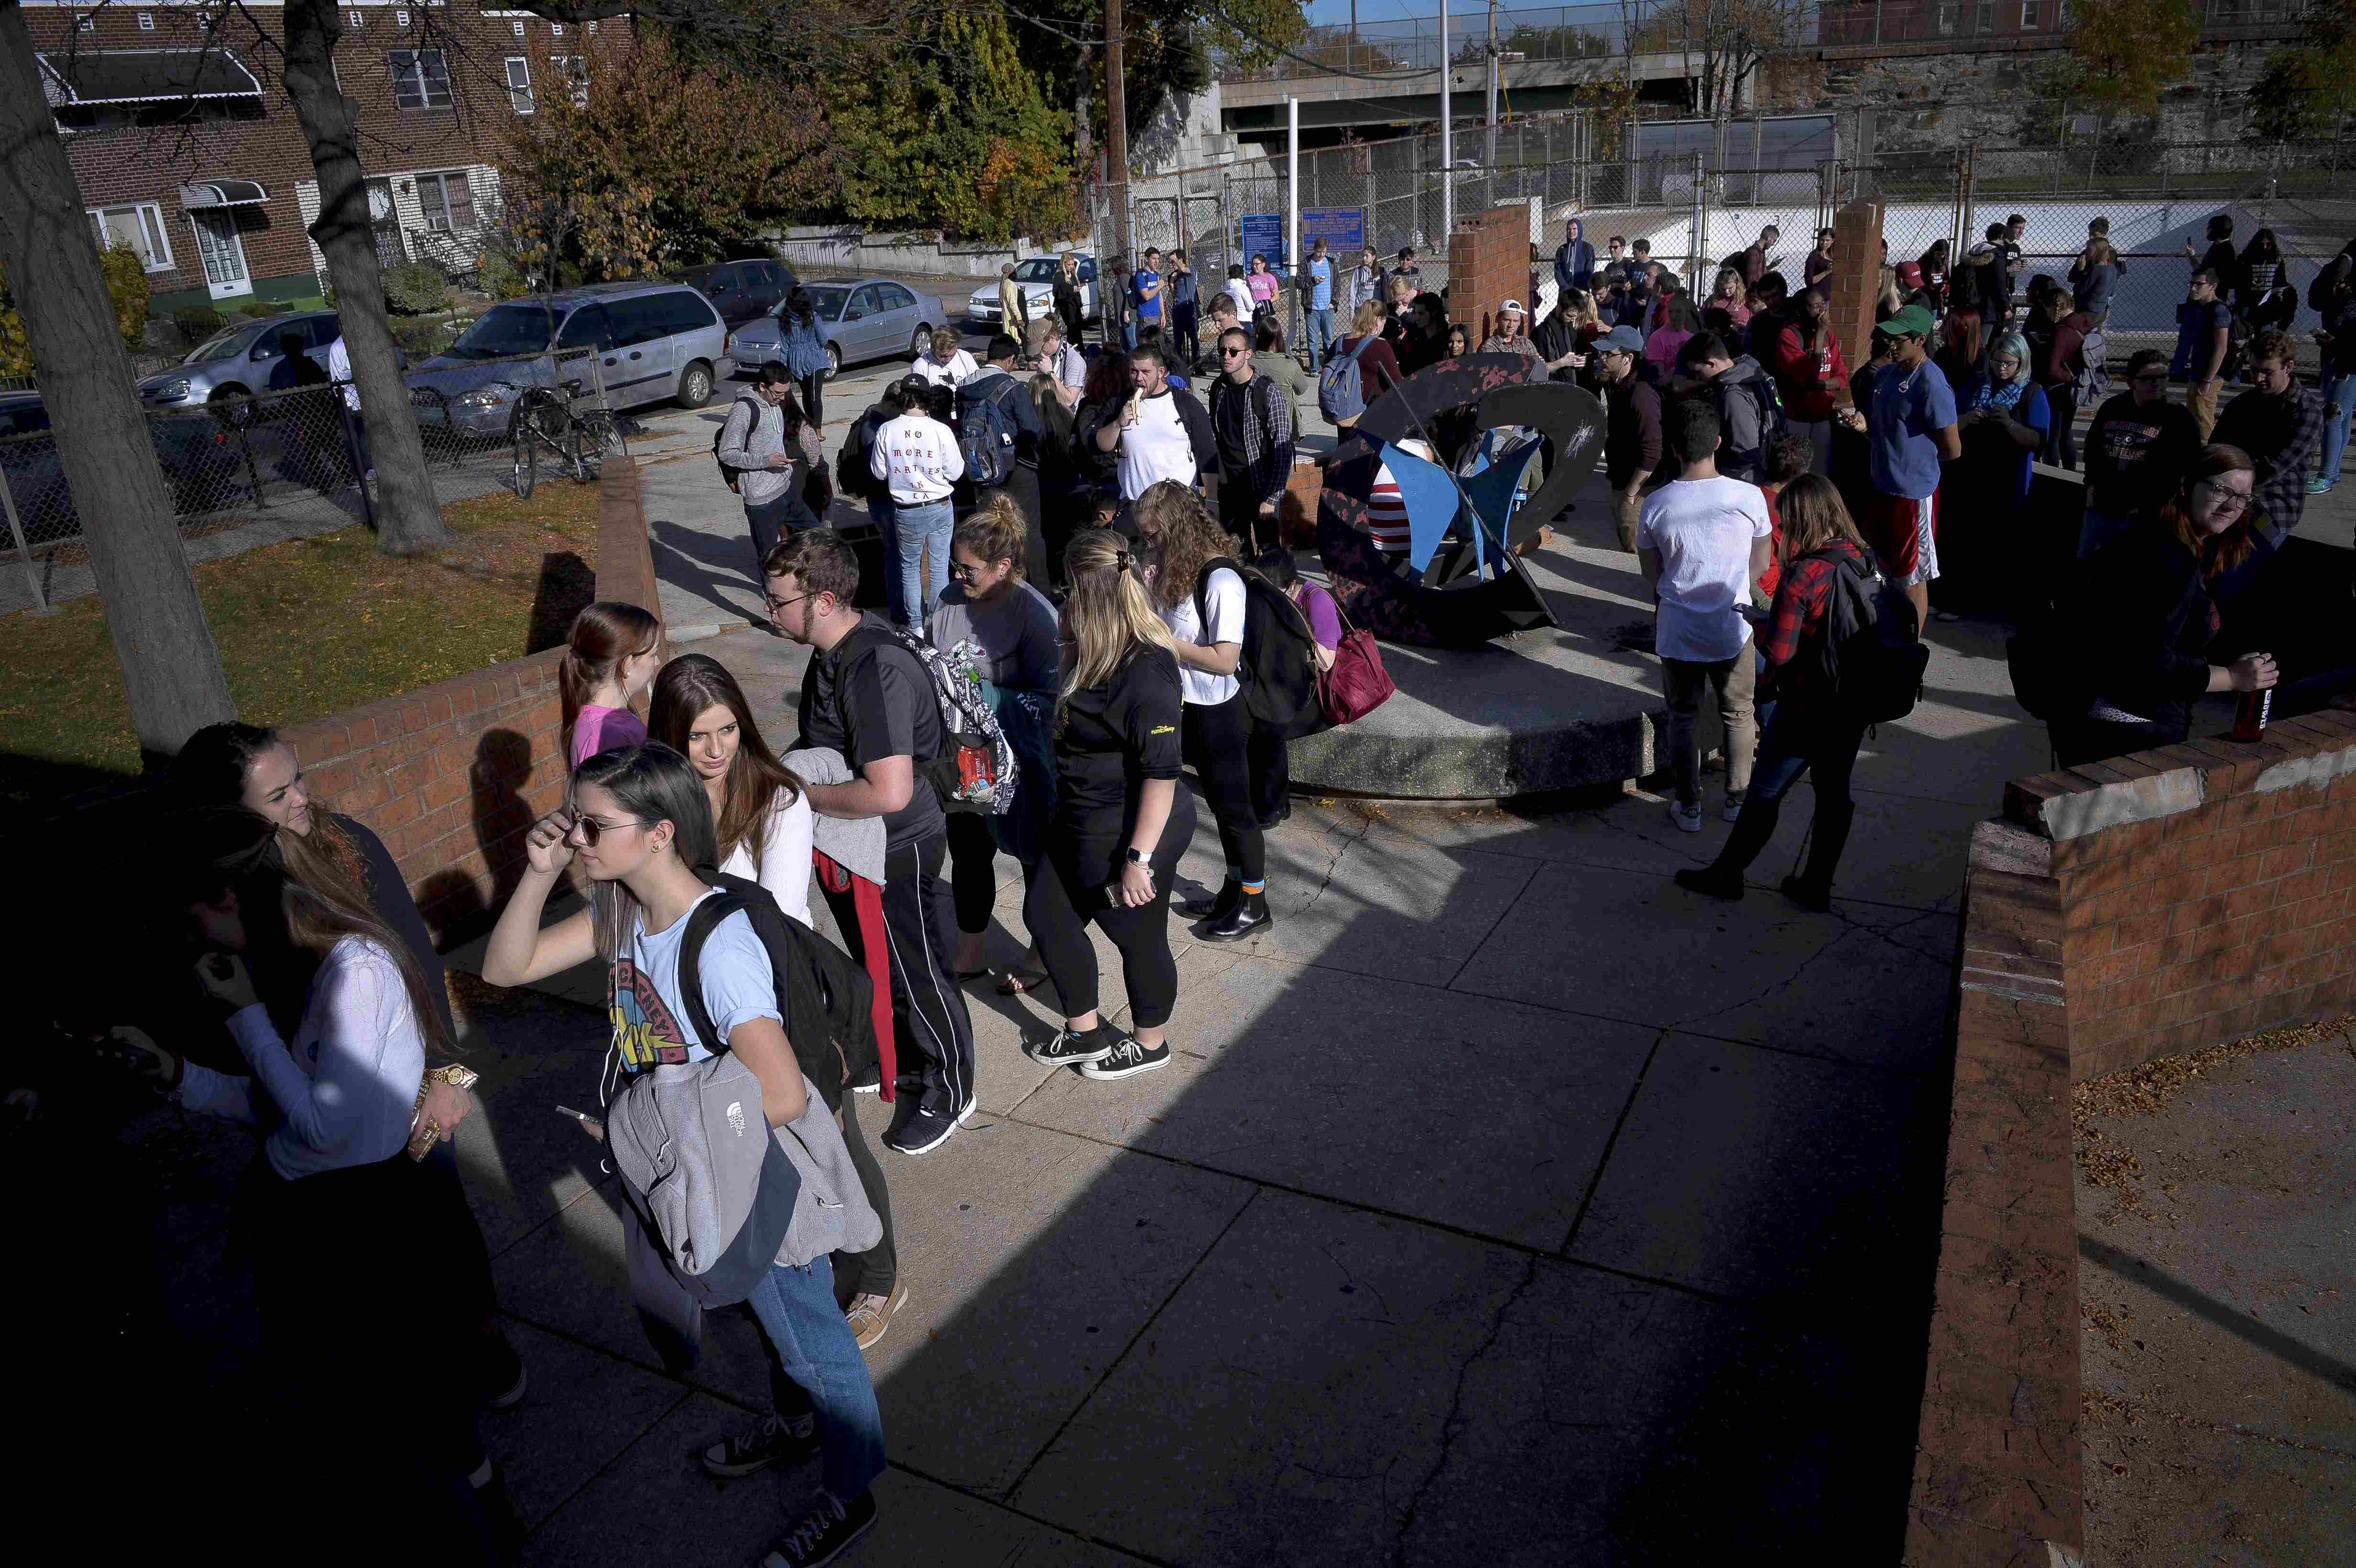 Hundreds of Temple University students wait in an hour-long line to vote during the U.S. presidential election in Philadelphia, Pennsylvania, U.S.